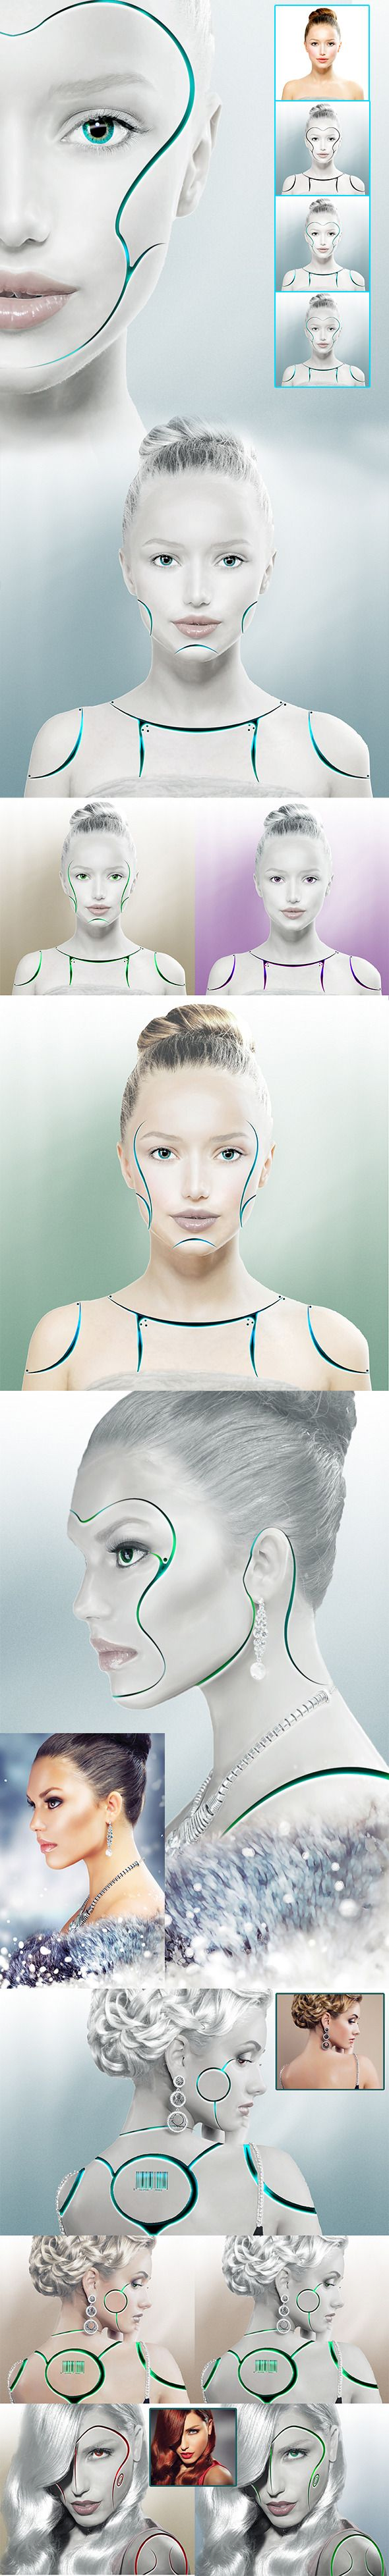 Synthetic Human Photoshop Action • Download ➝ https://graphicriver.net/item/synthetic-human-action/9771548?ref=pxcr